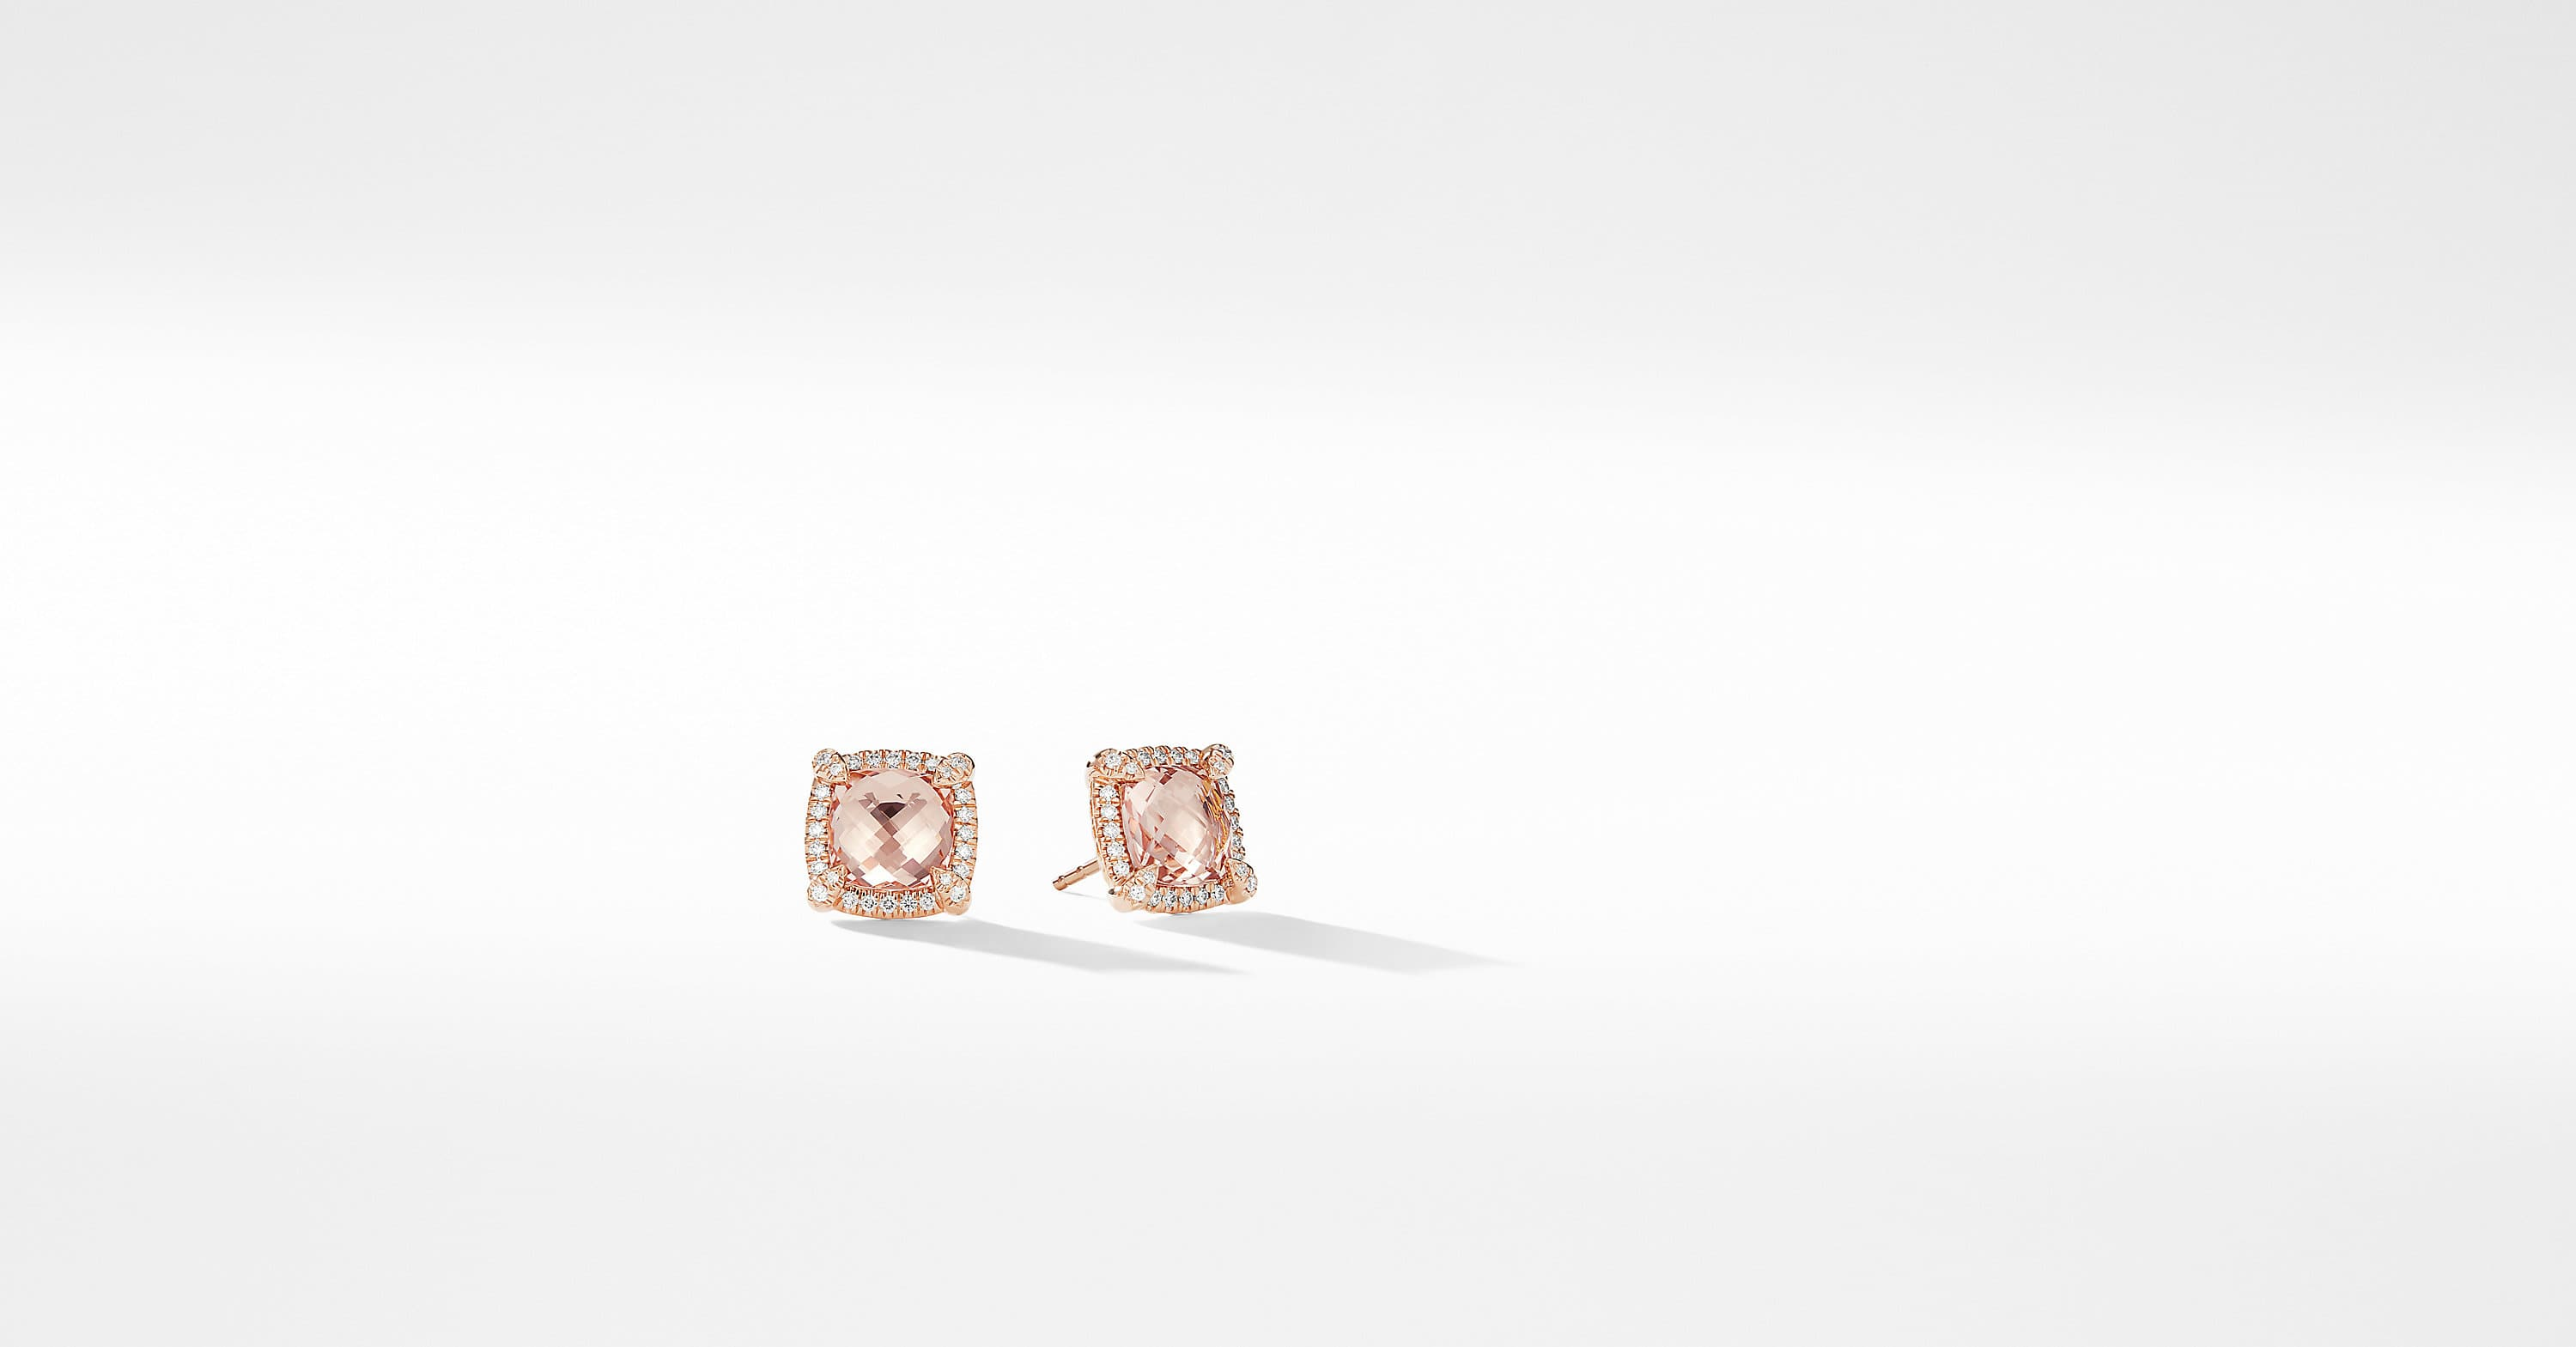 Châtelaine Pave Bezel Stud Earring in 18K Rose Gold